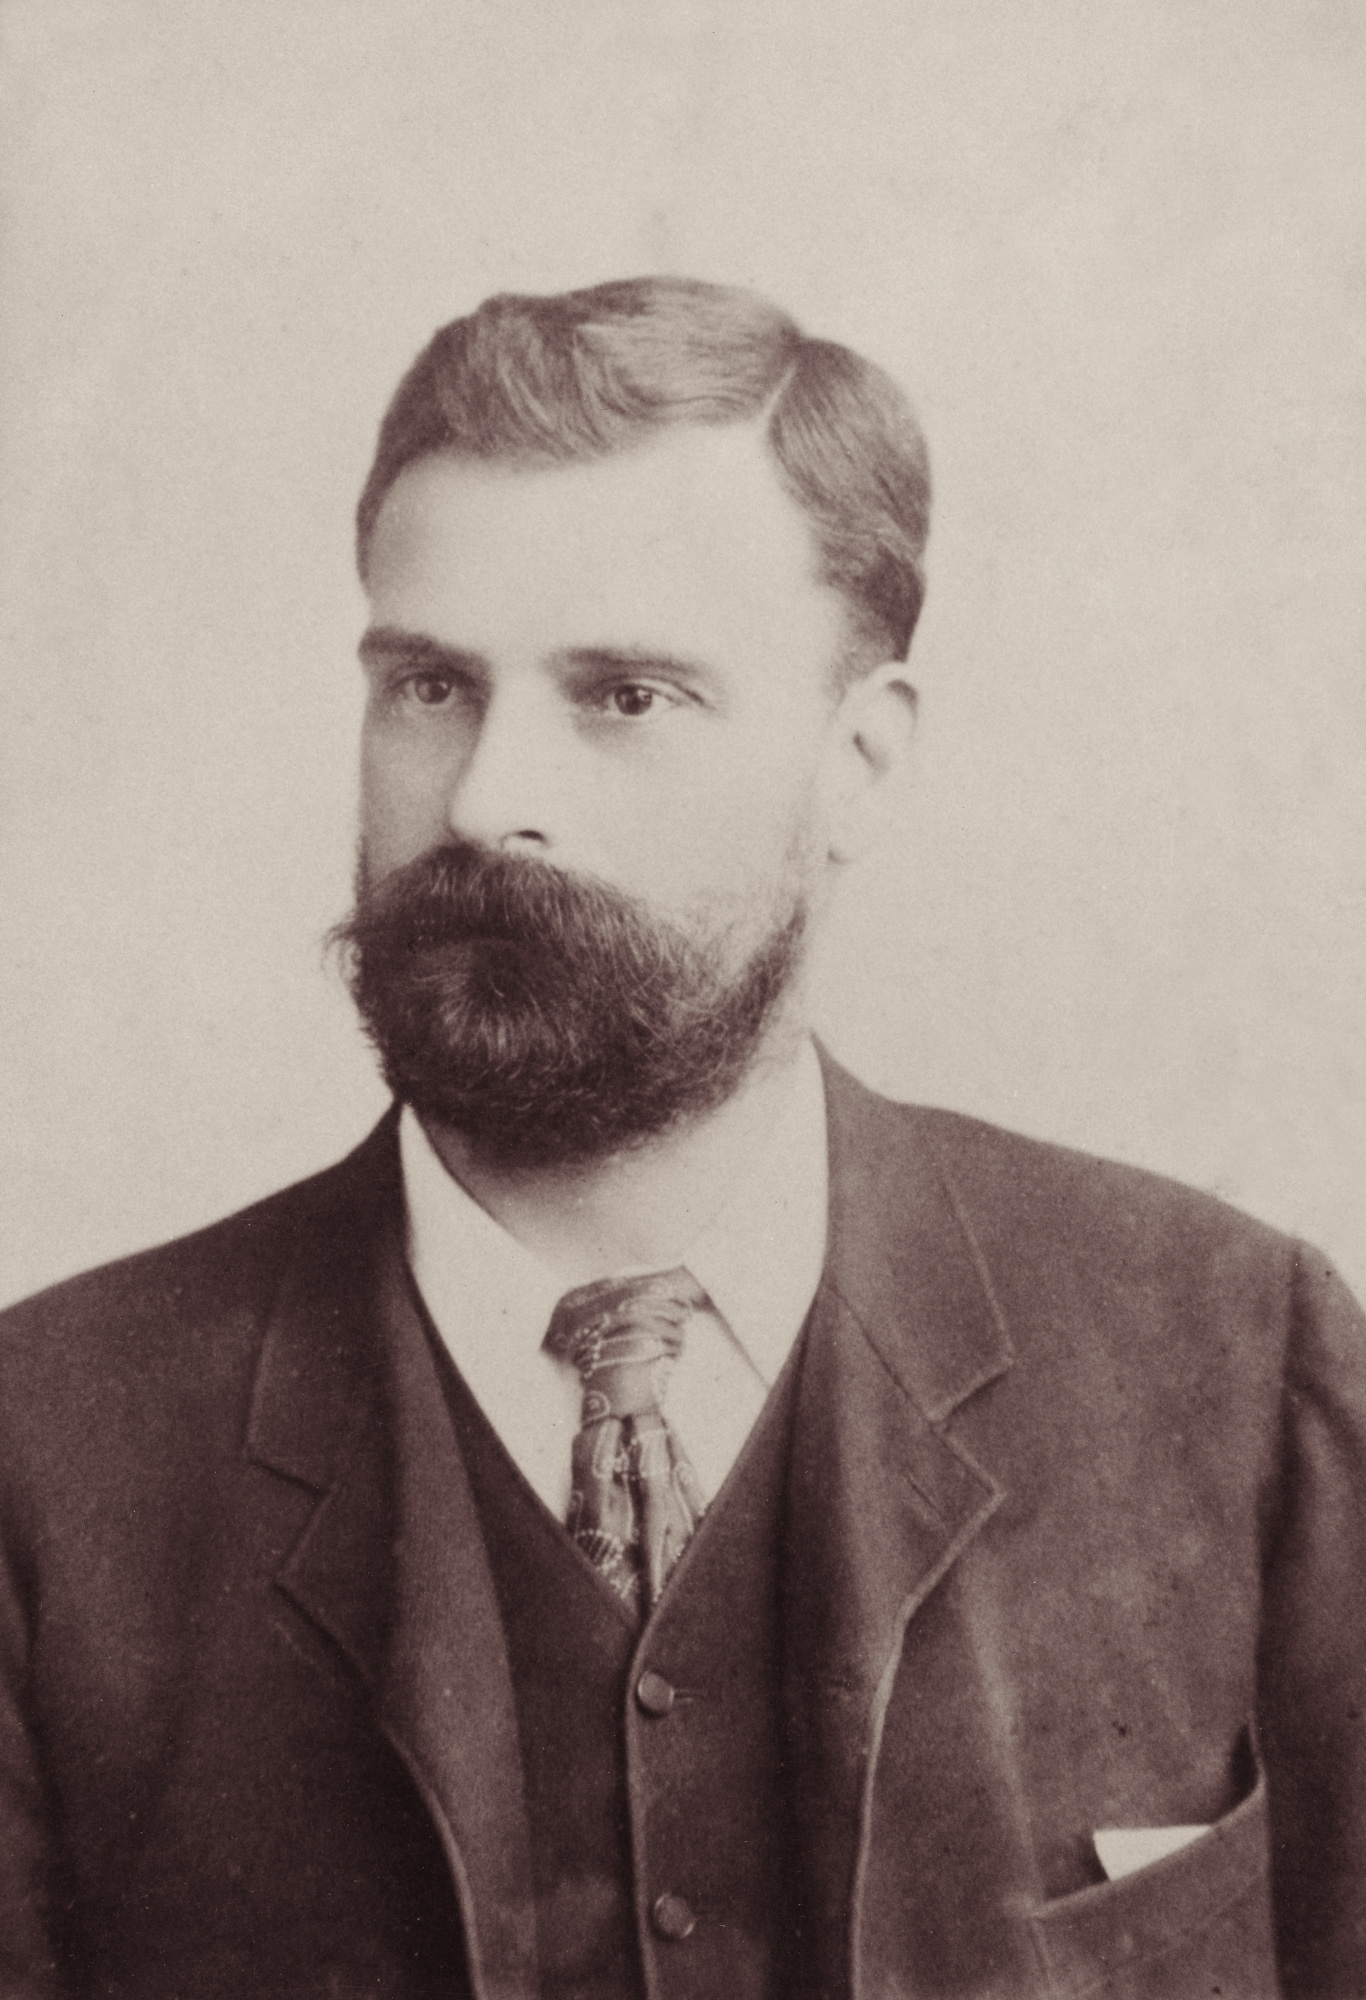 Bearded man in suit and tie.